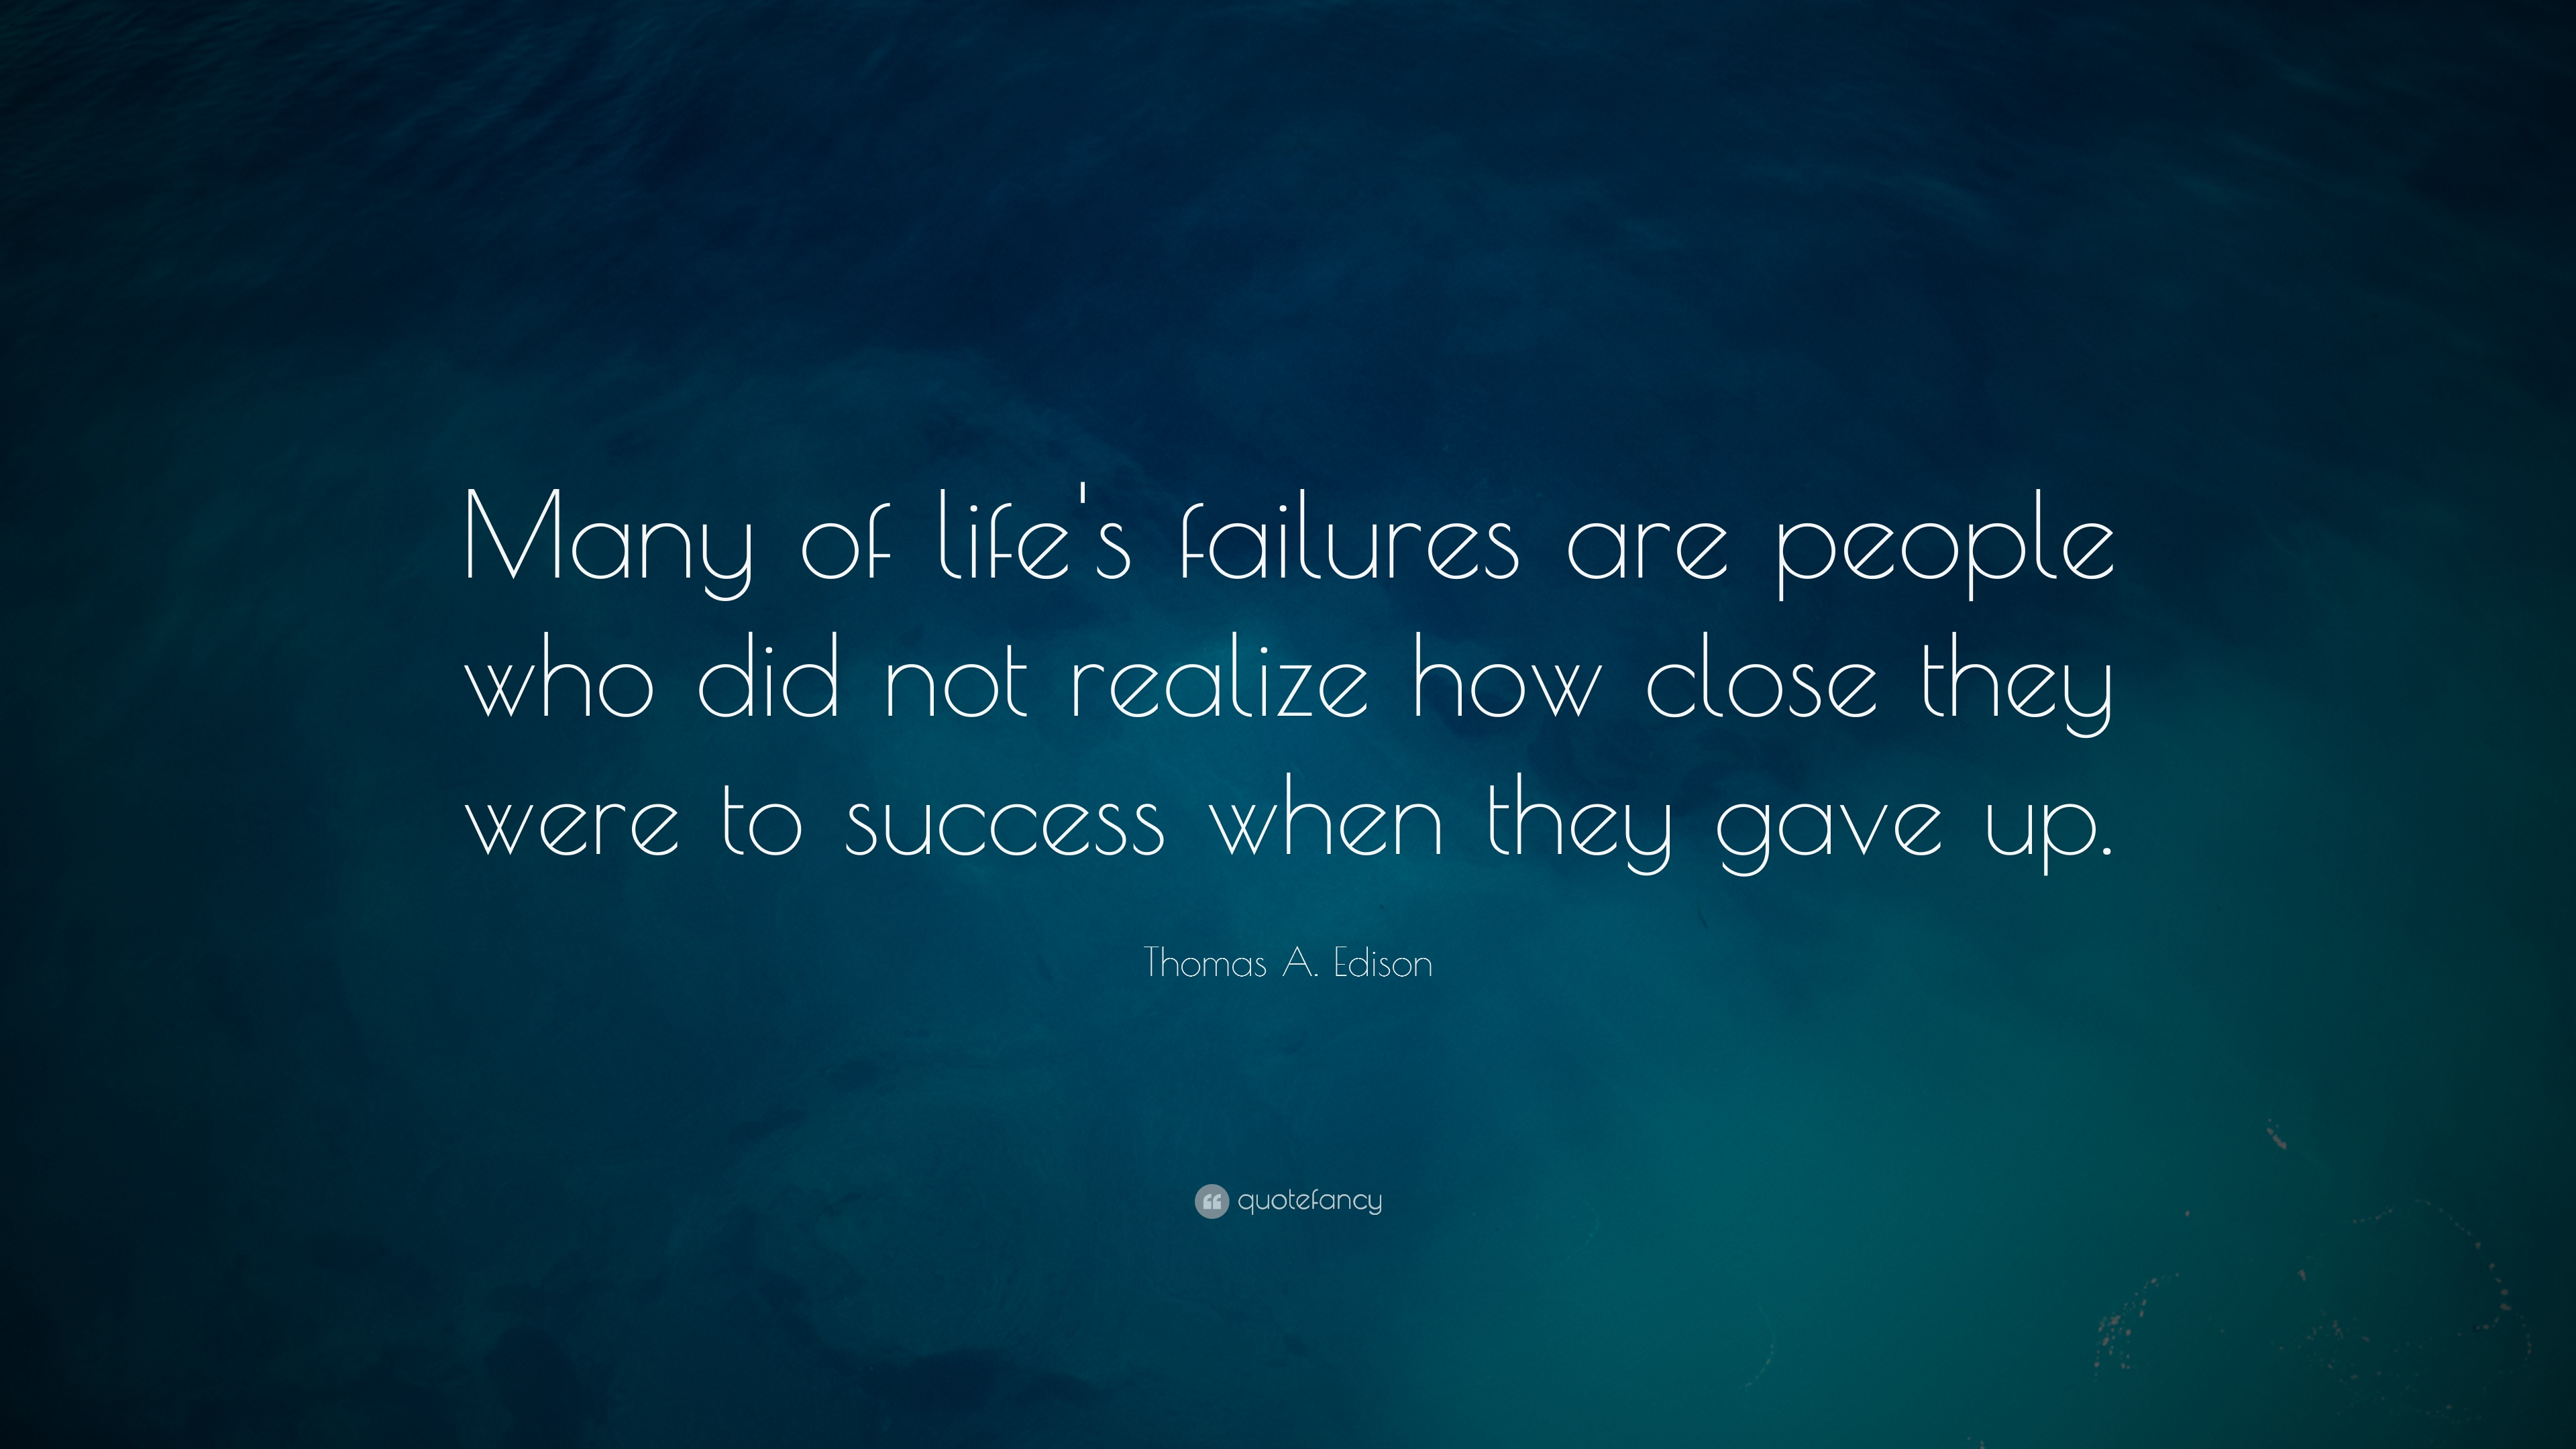 positive quotes many of lifes failures are people who did not realize how close